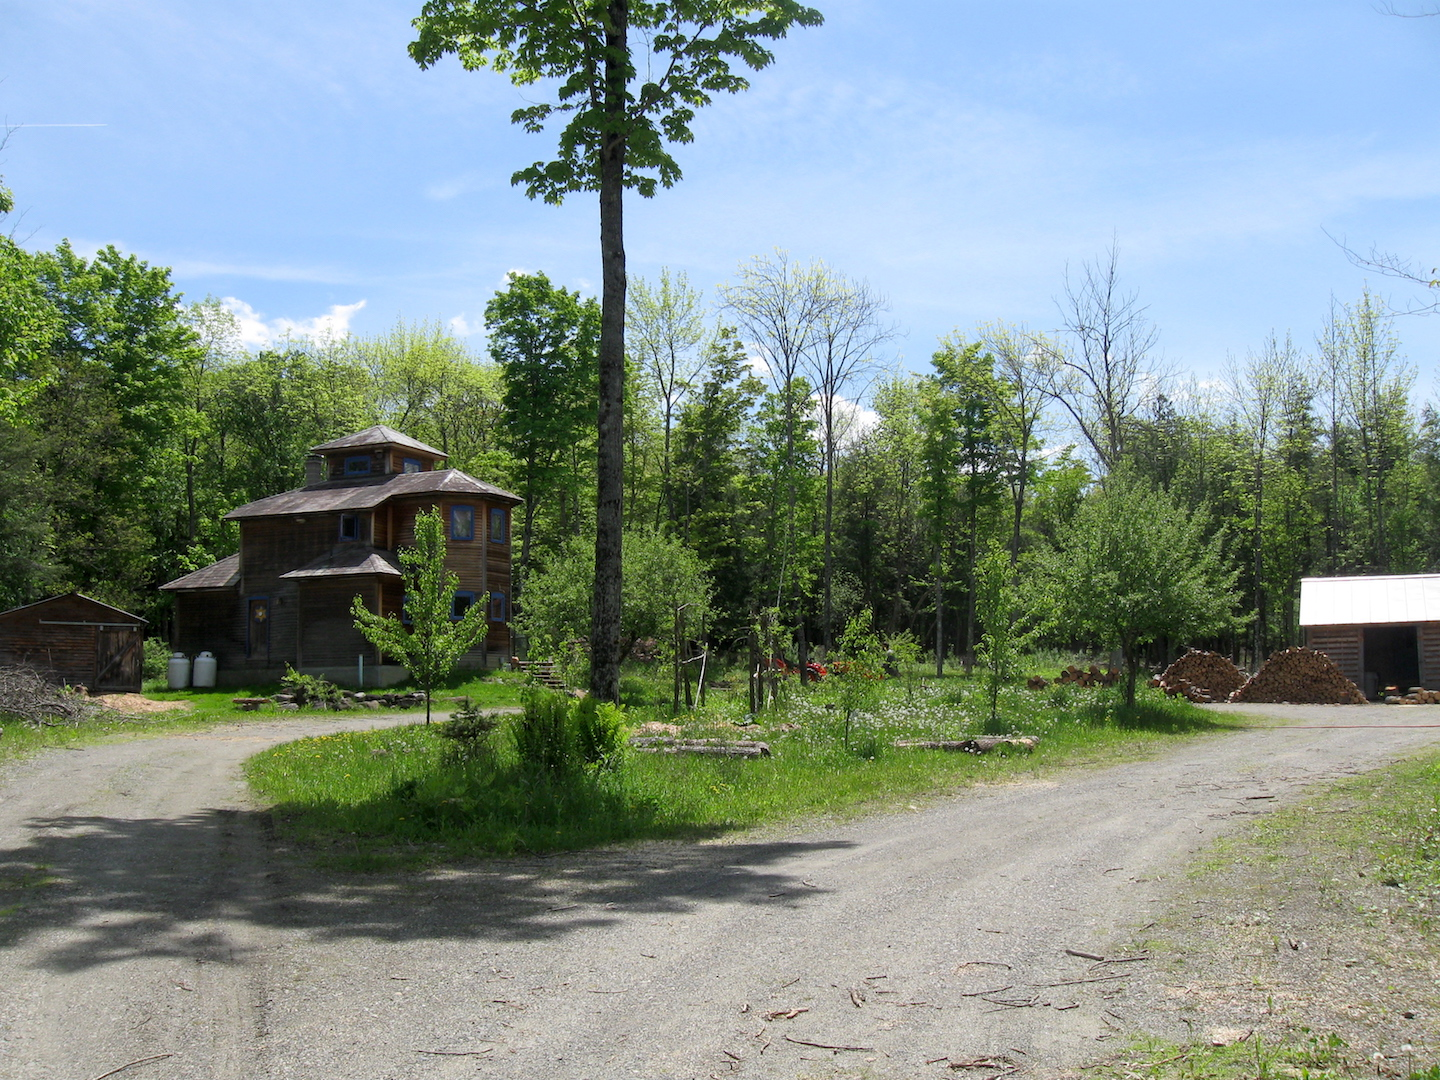 Homestead permaculture gardens